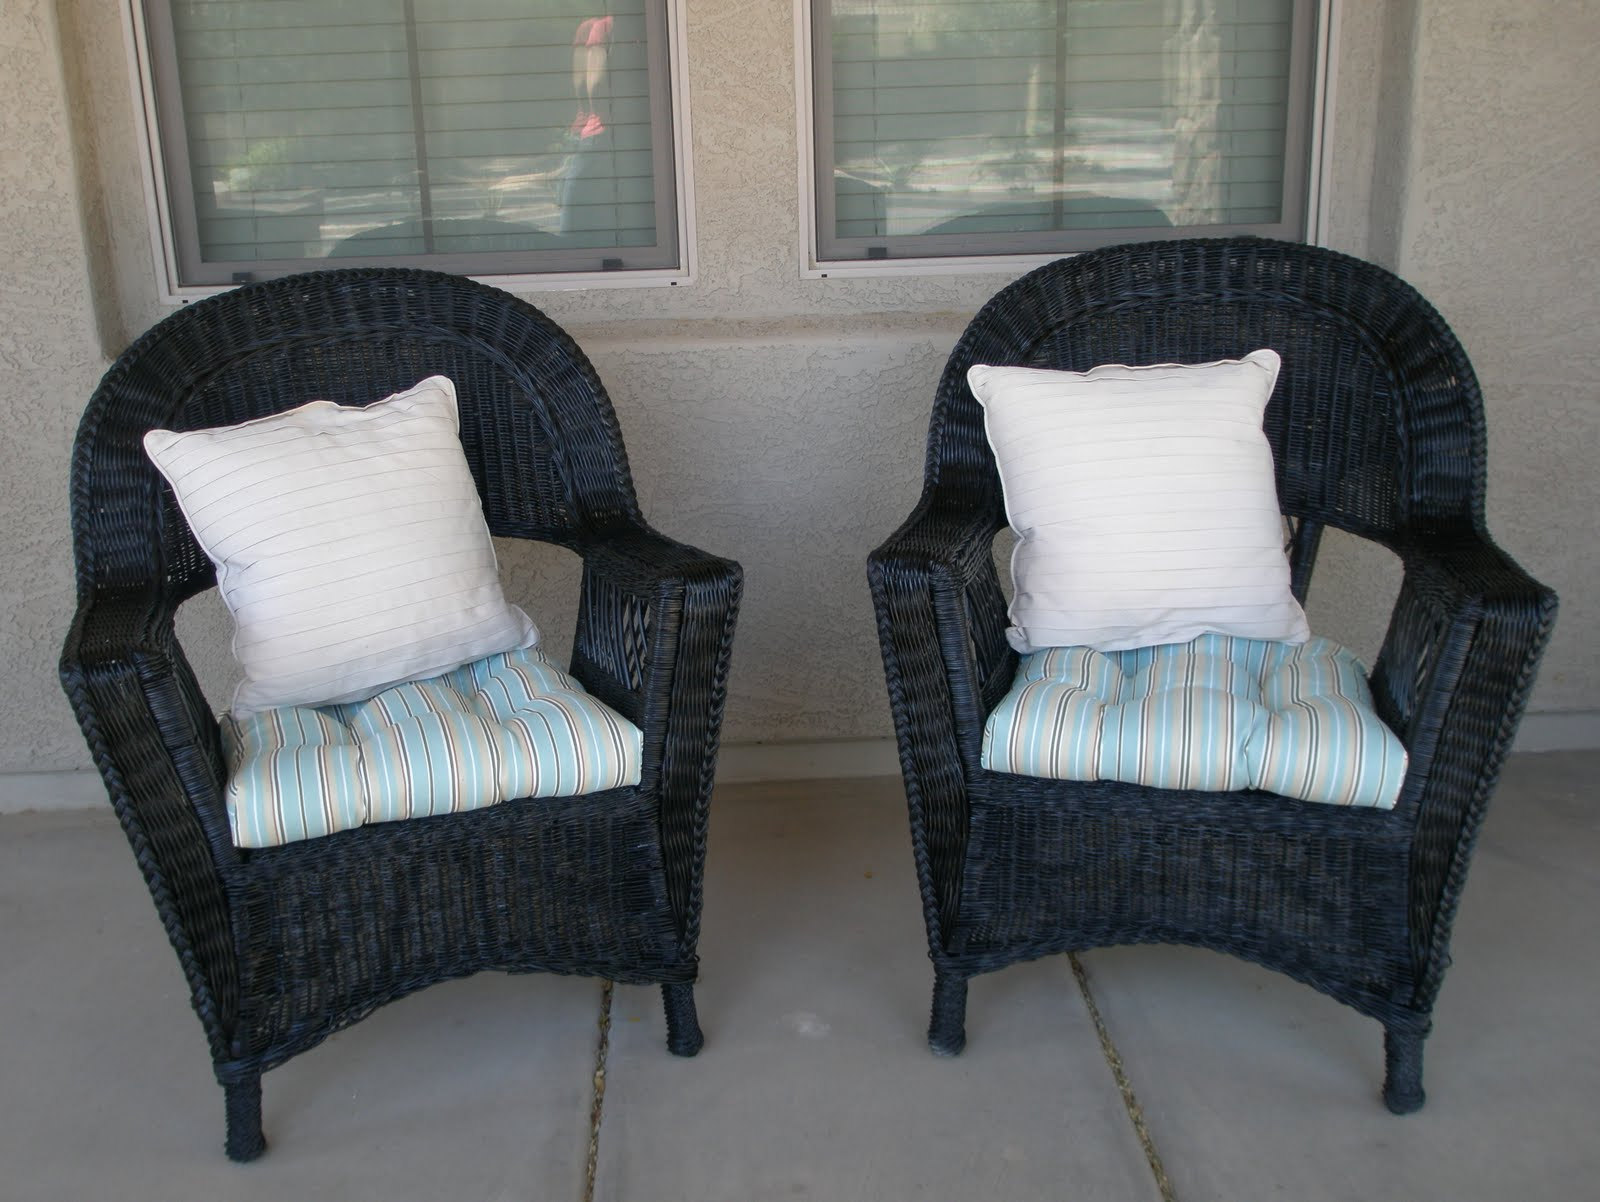 Marin s Creations Wicker Patio Chairs Before and After